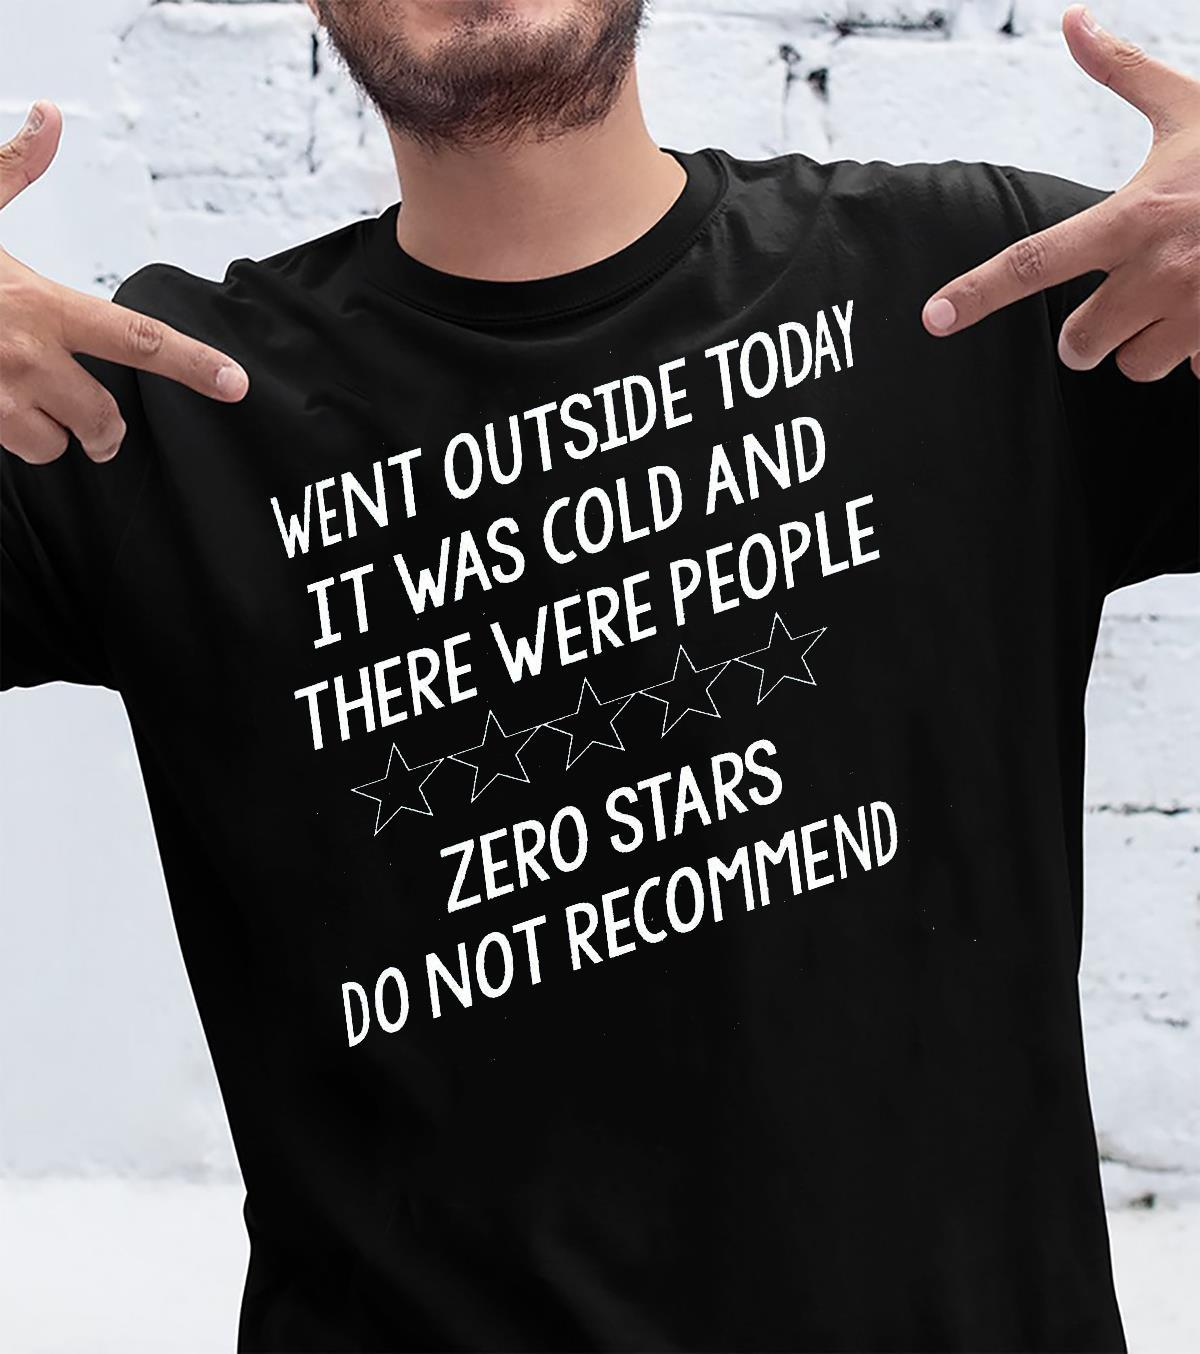 Went Outside Today It Was Cold And There Were People Zero Stars Do Not Recommend Shirt unisex